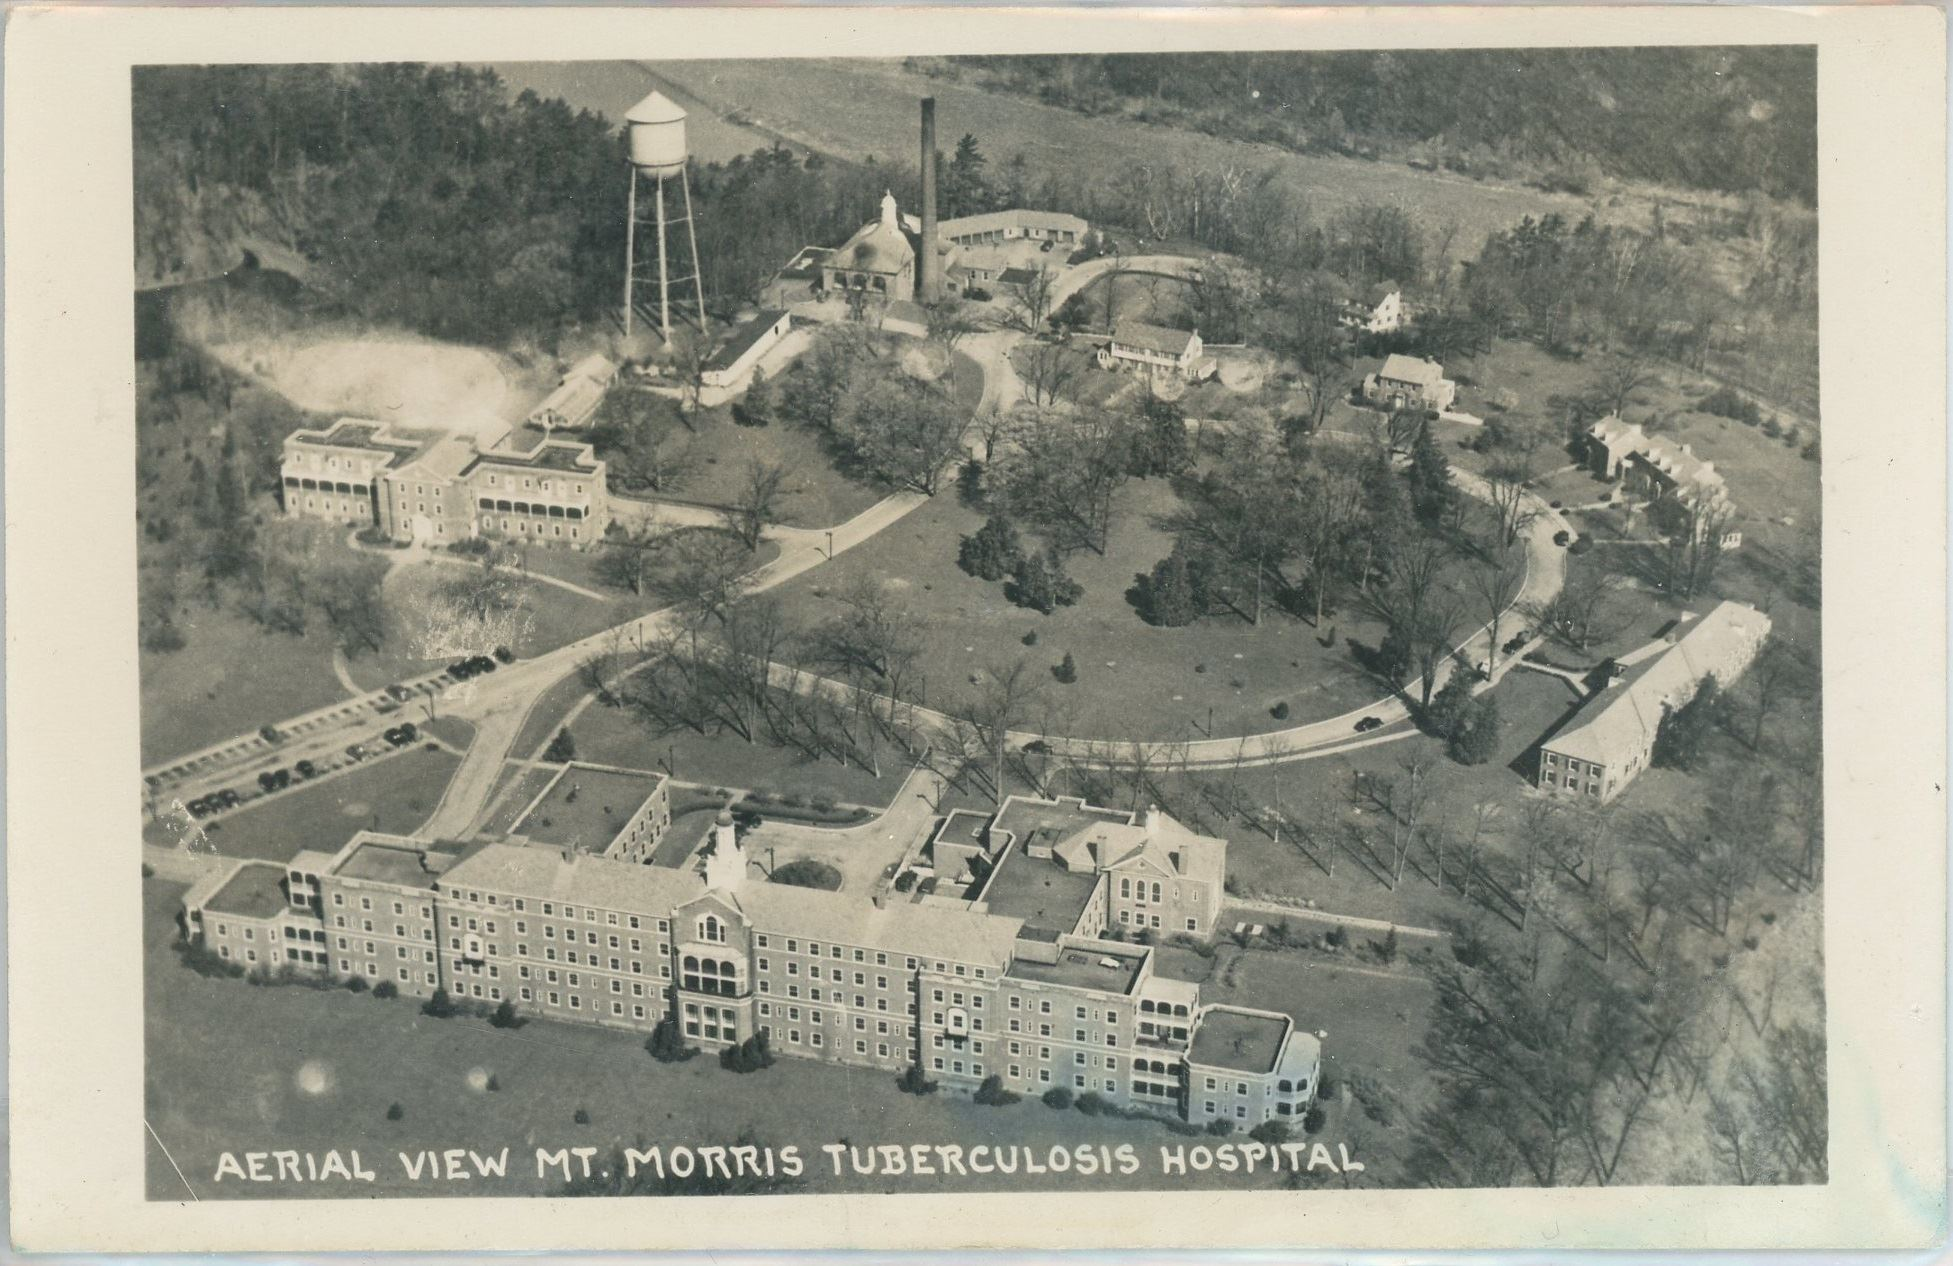 Aerial image of tuberculosis hospital